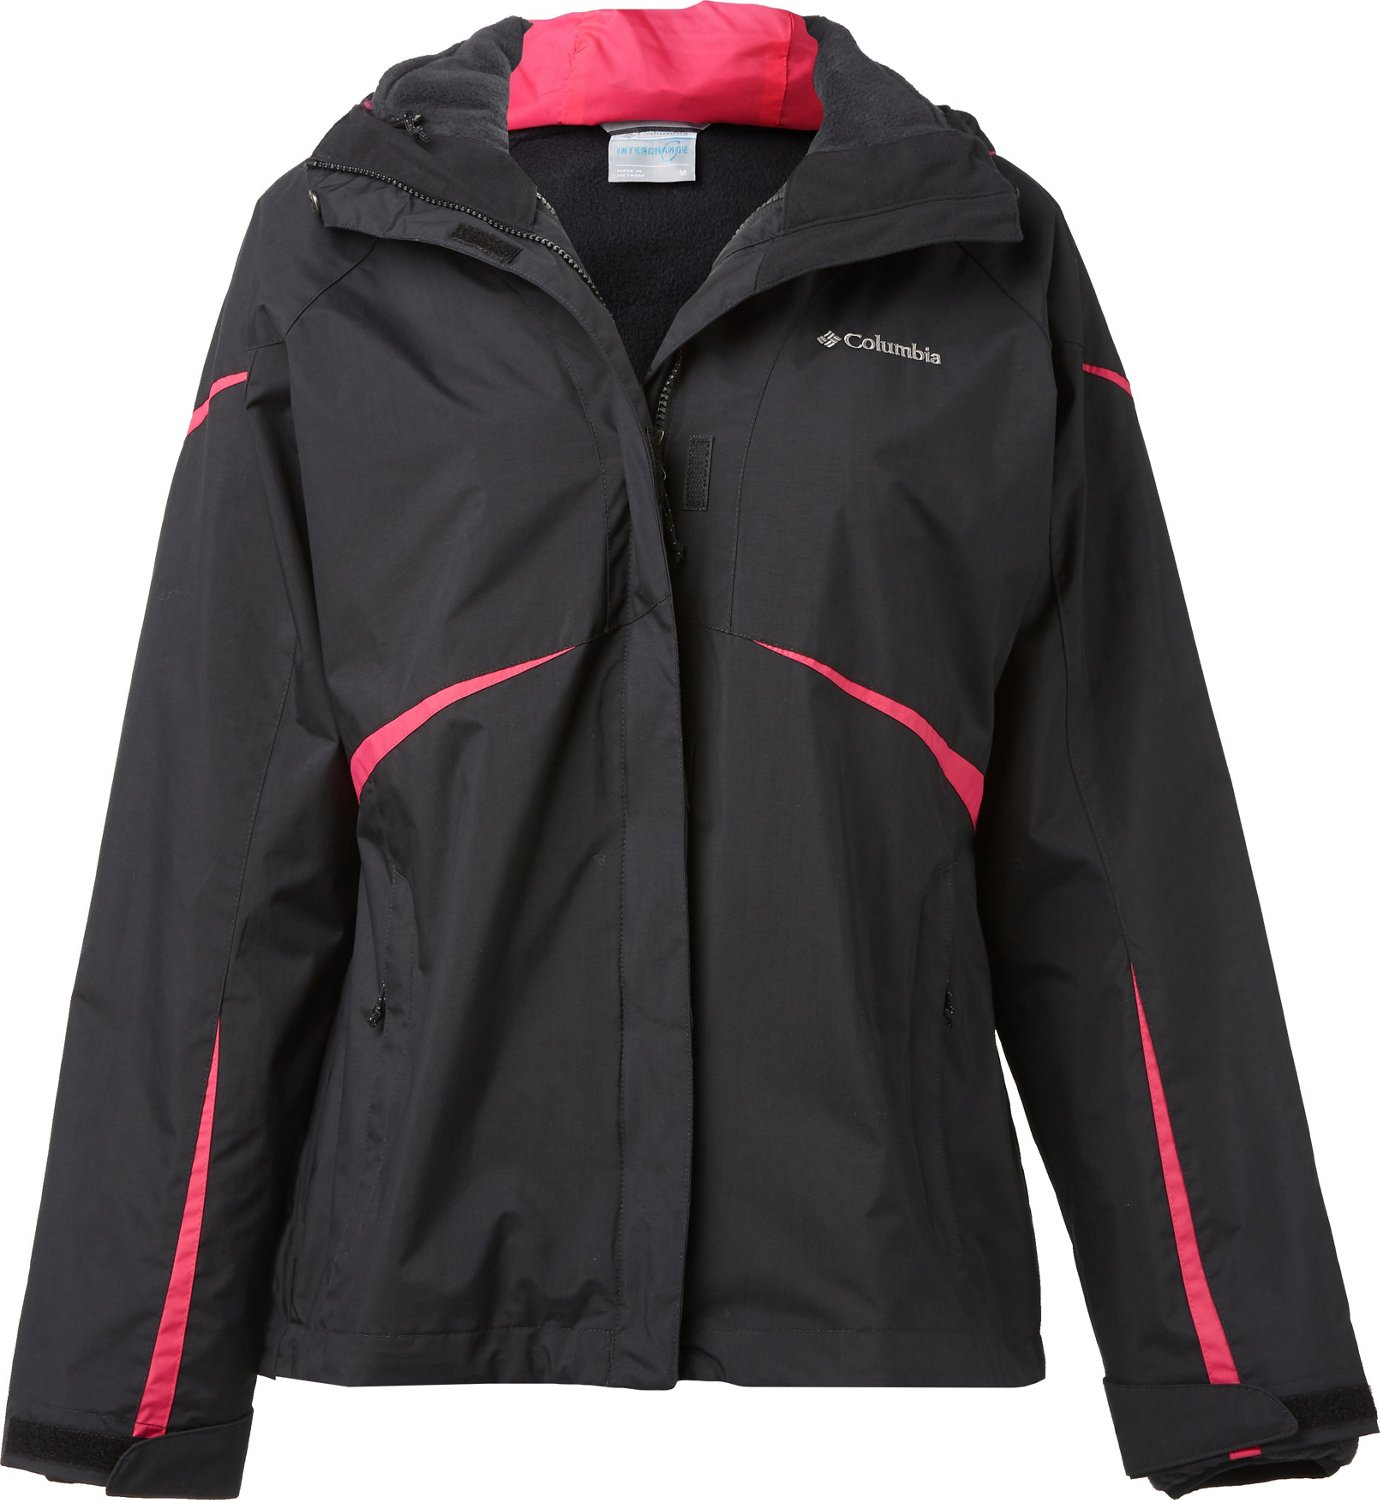 a942cd519cc0 Jackets for Women